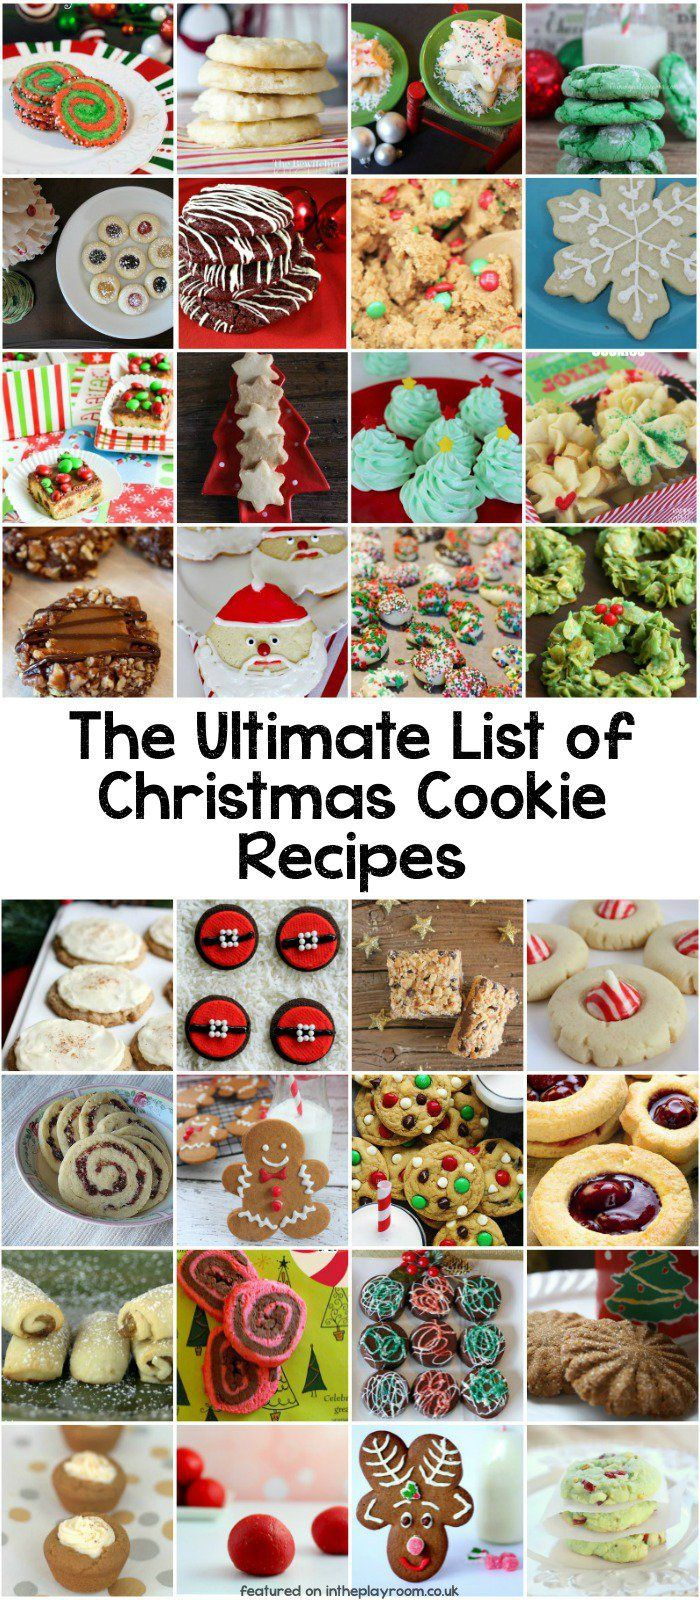 Best 25+ Holiday cookie recipes ideas on Pinterest | Easy holiday ...